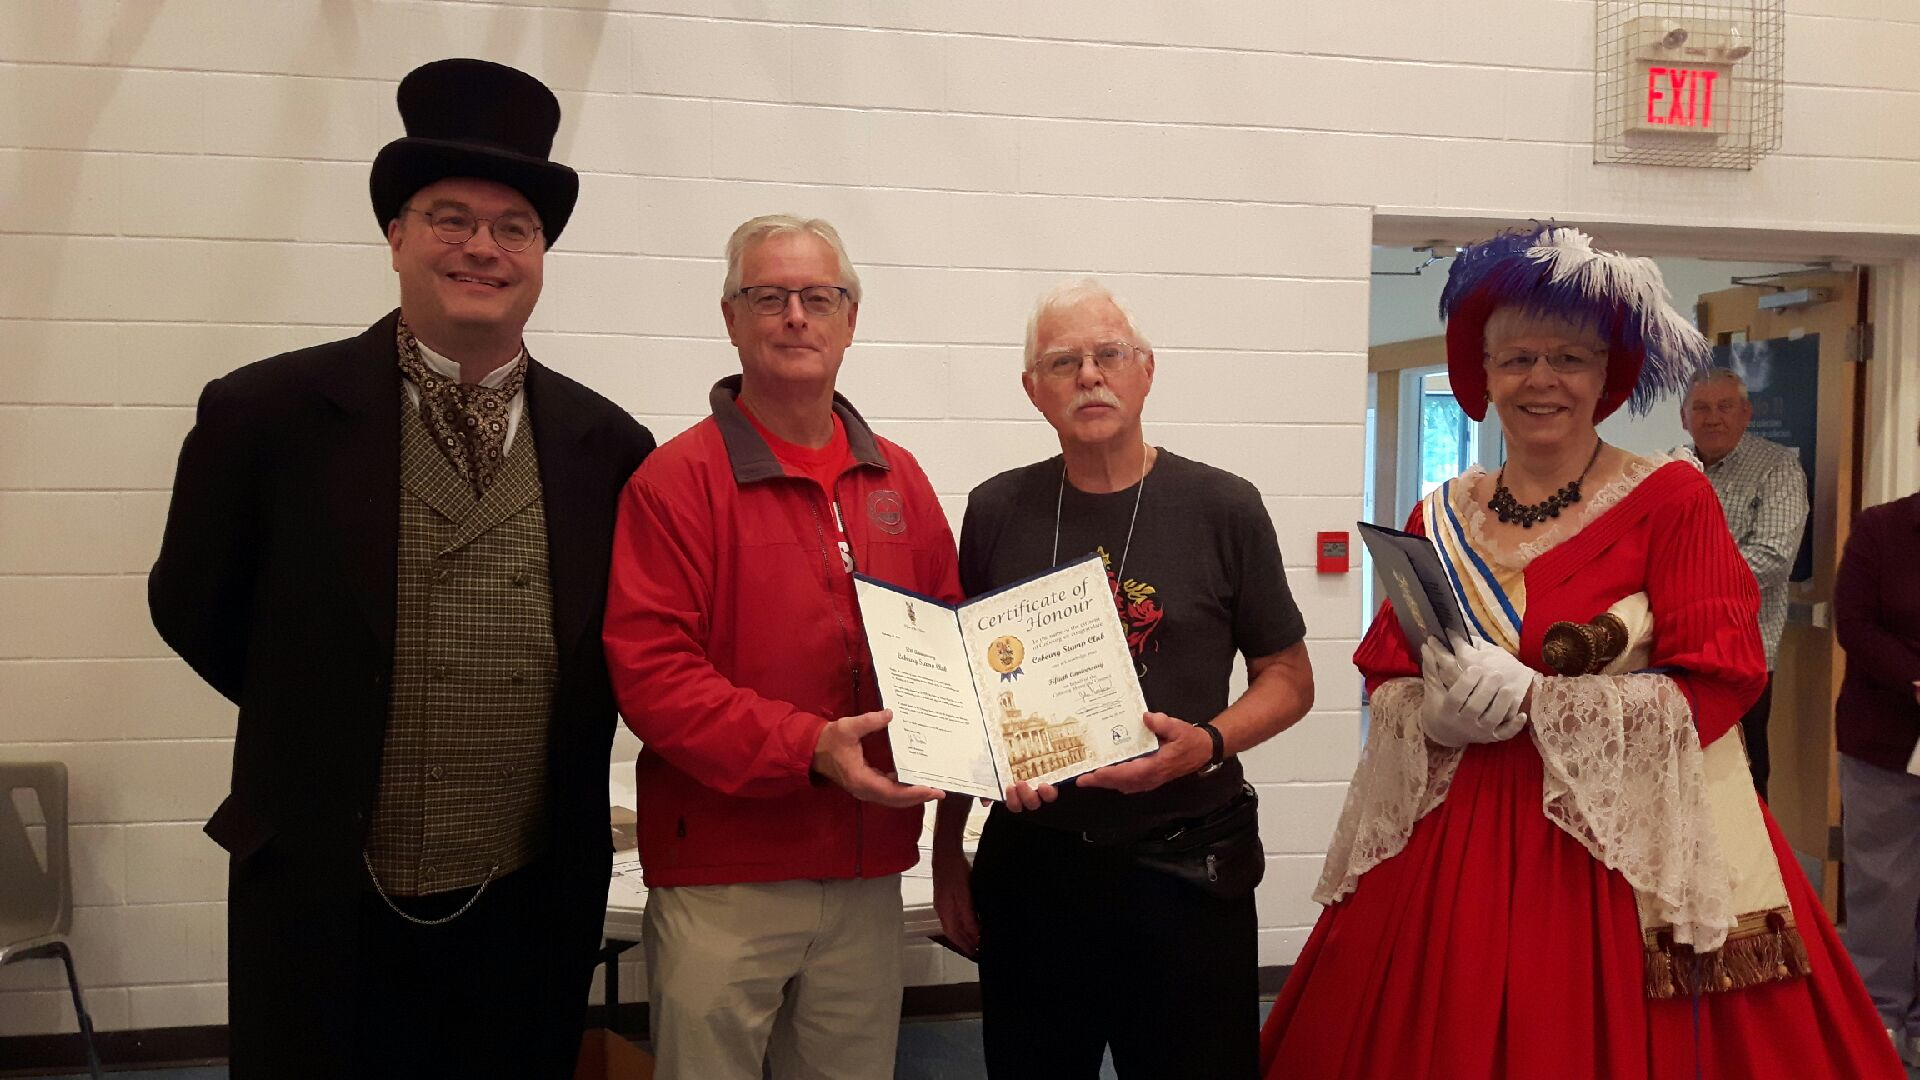 Official town greetings are received - from left, Franklin, Henderson, club president Malcolm Pacey and Robinson. The James Cockburn table is seen with all proclamations and presentations made